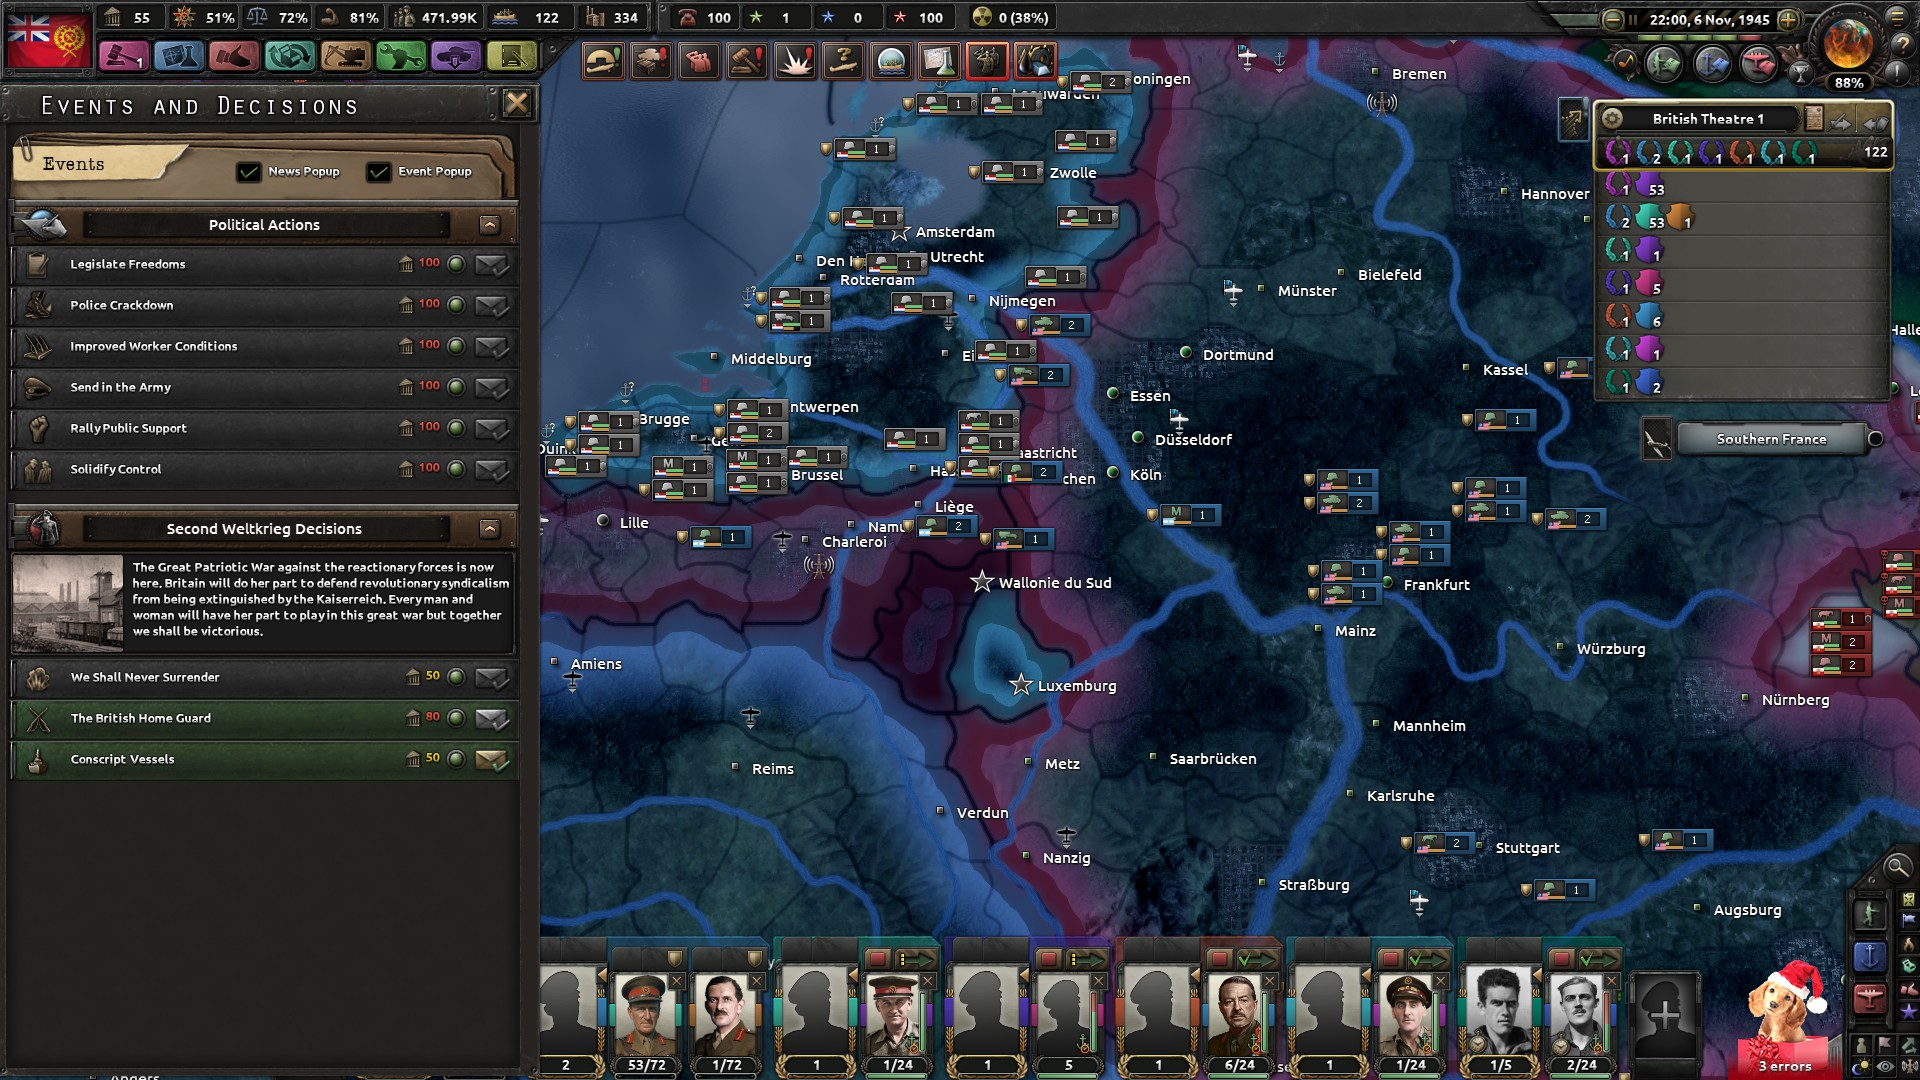 Britains Wacky AI and the equally wacky Conquest of Germany